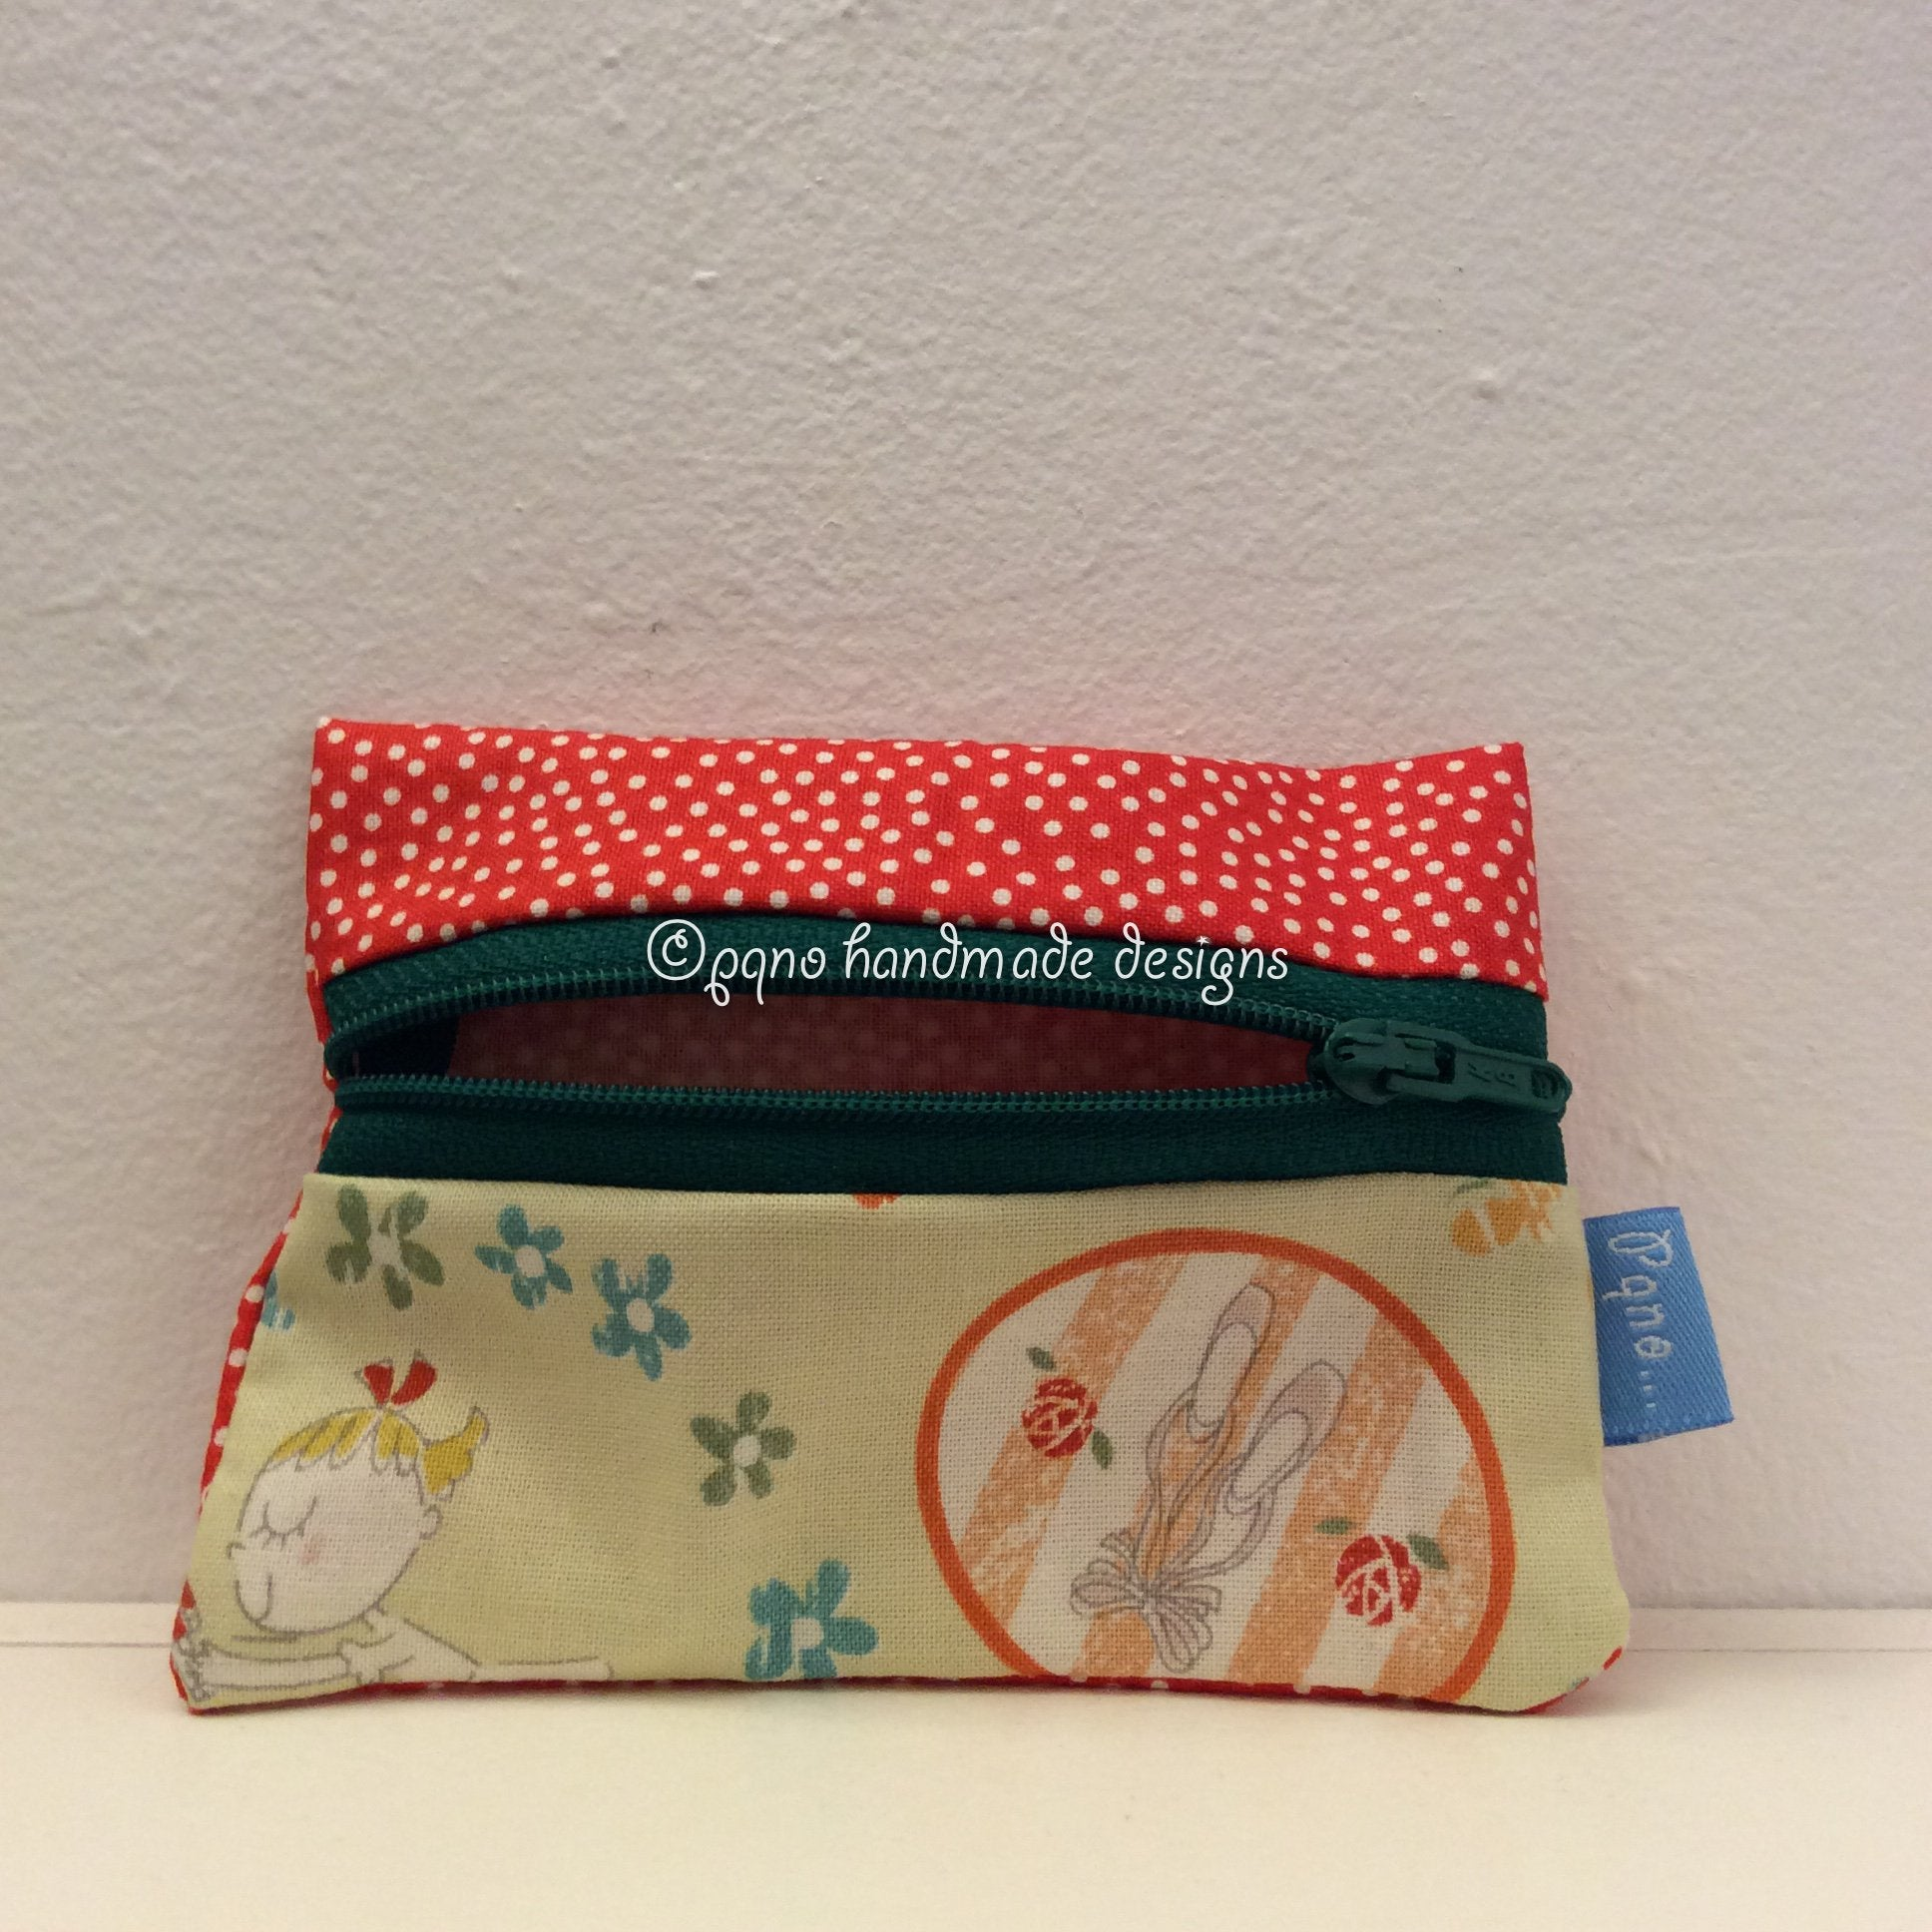 Billetero bailarina - Billeter ballarina - Ballet dancer wallet - Ballerina jenta billfold